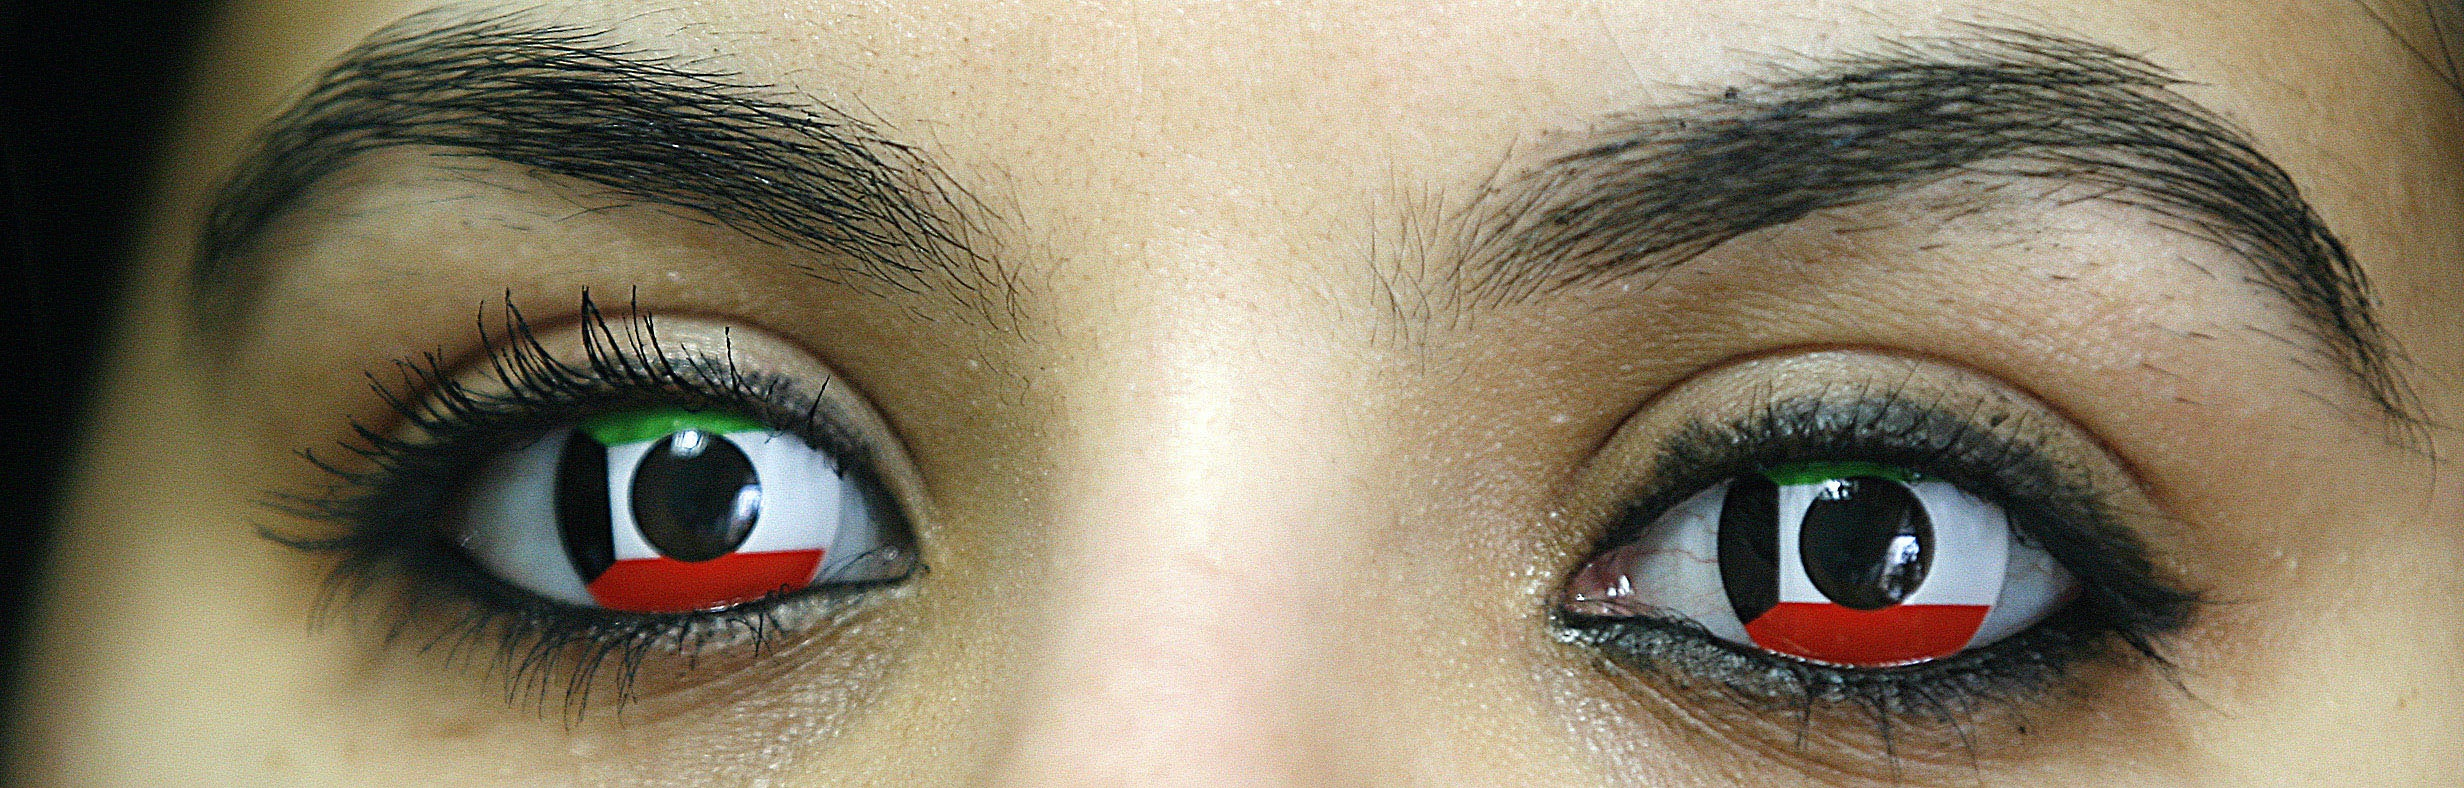 What You Should Know About Buying Colored Contacts For Halloween